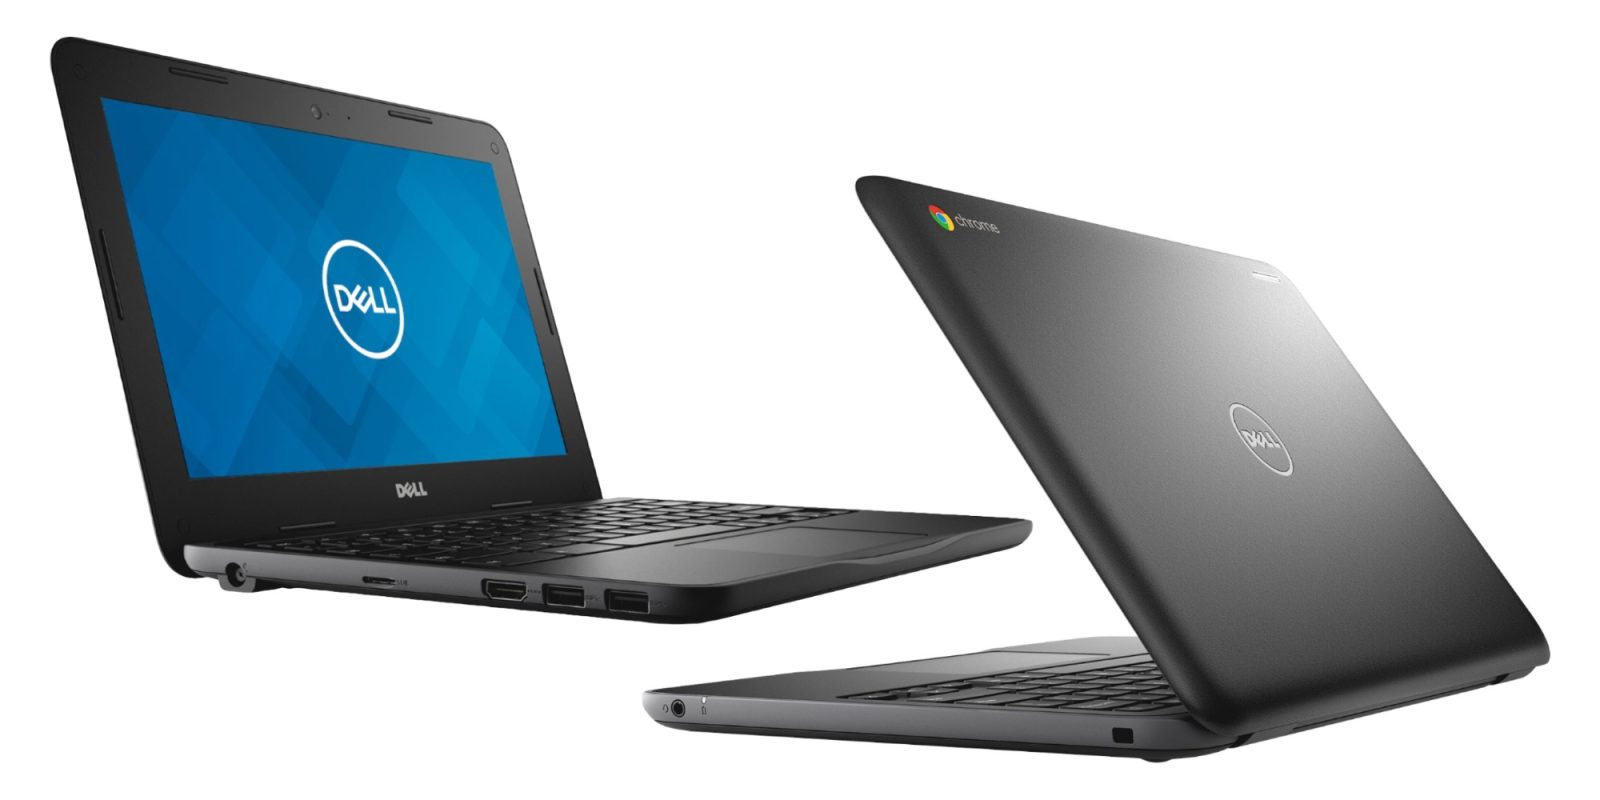 Lock-in a 25% discount on Dell's 11.6-inch Chromebook, now on sale for $149